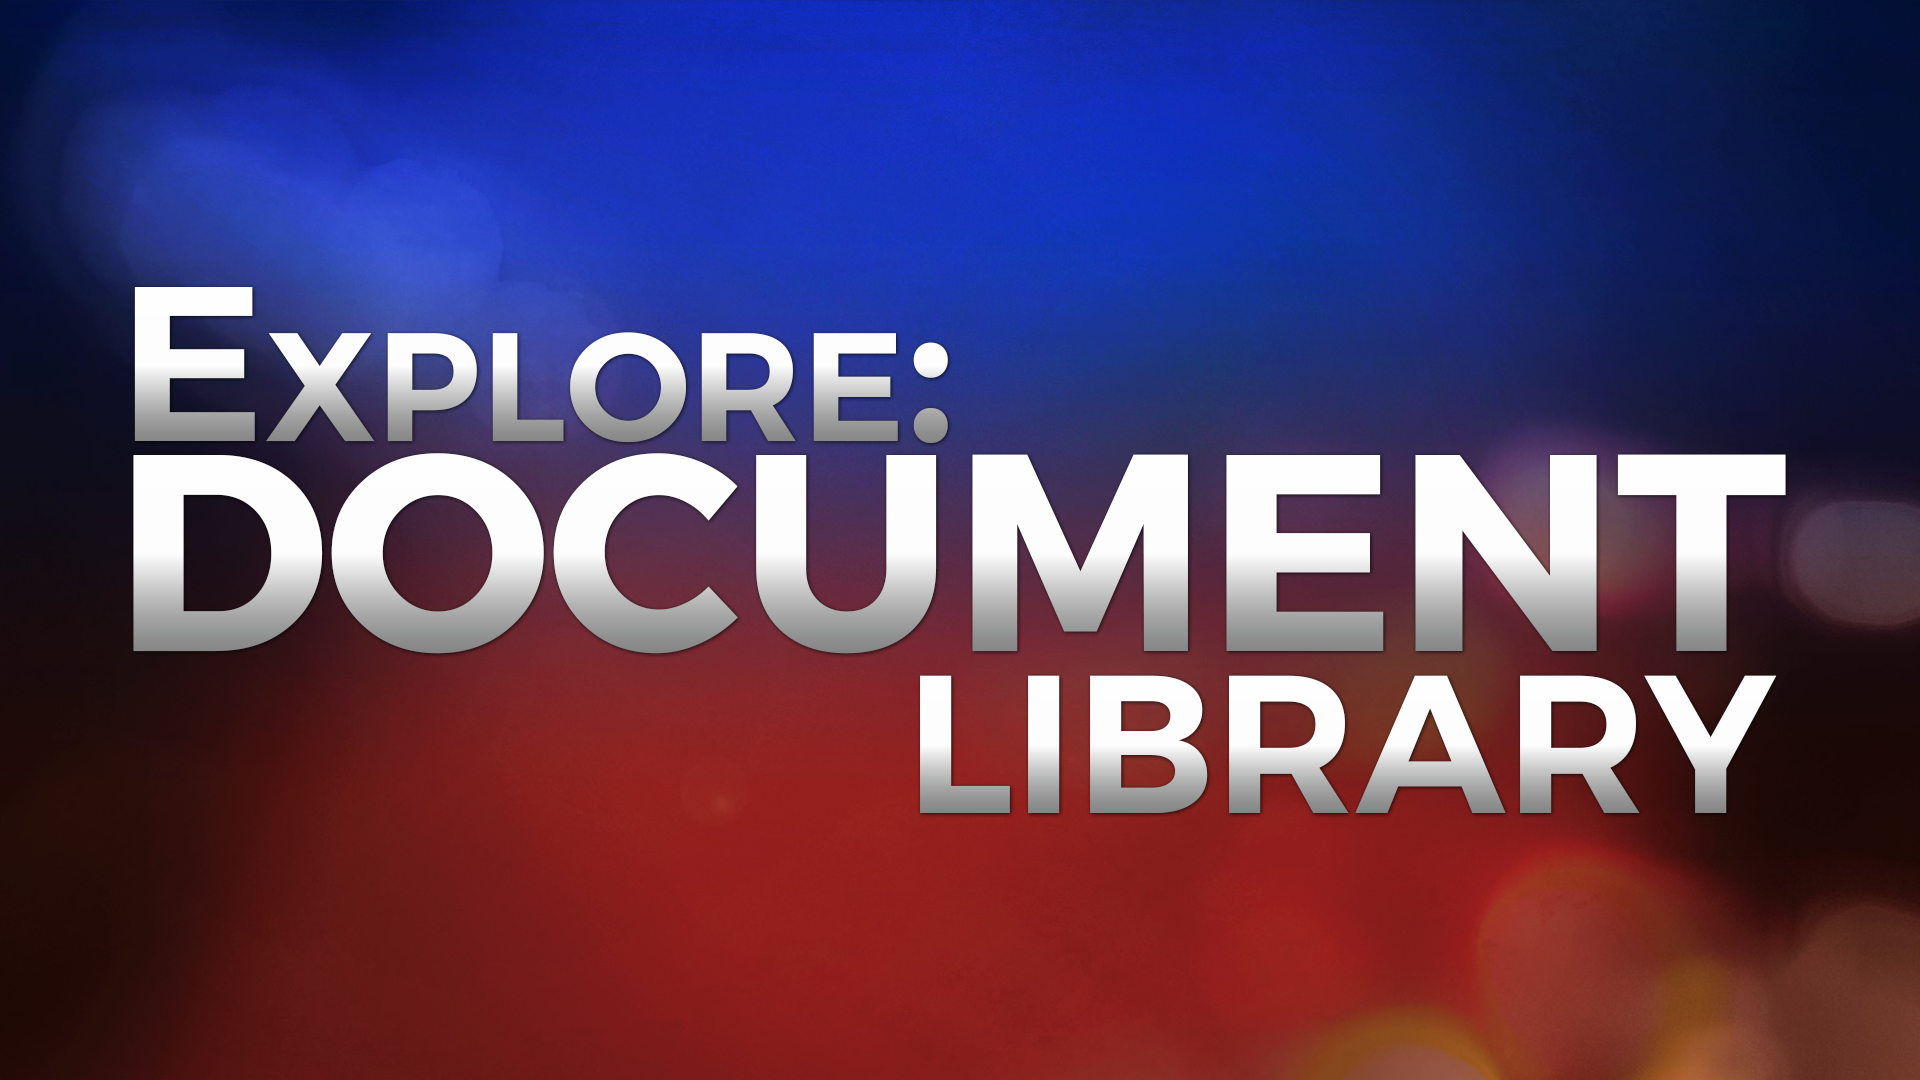 ExploreDocuments